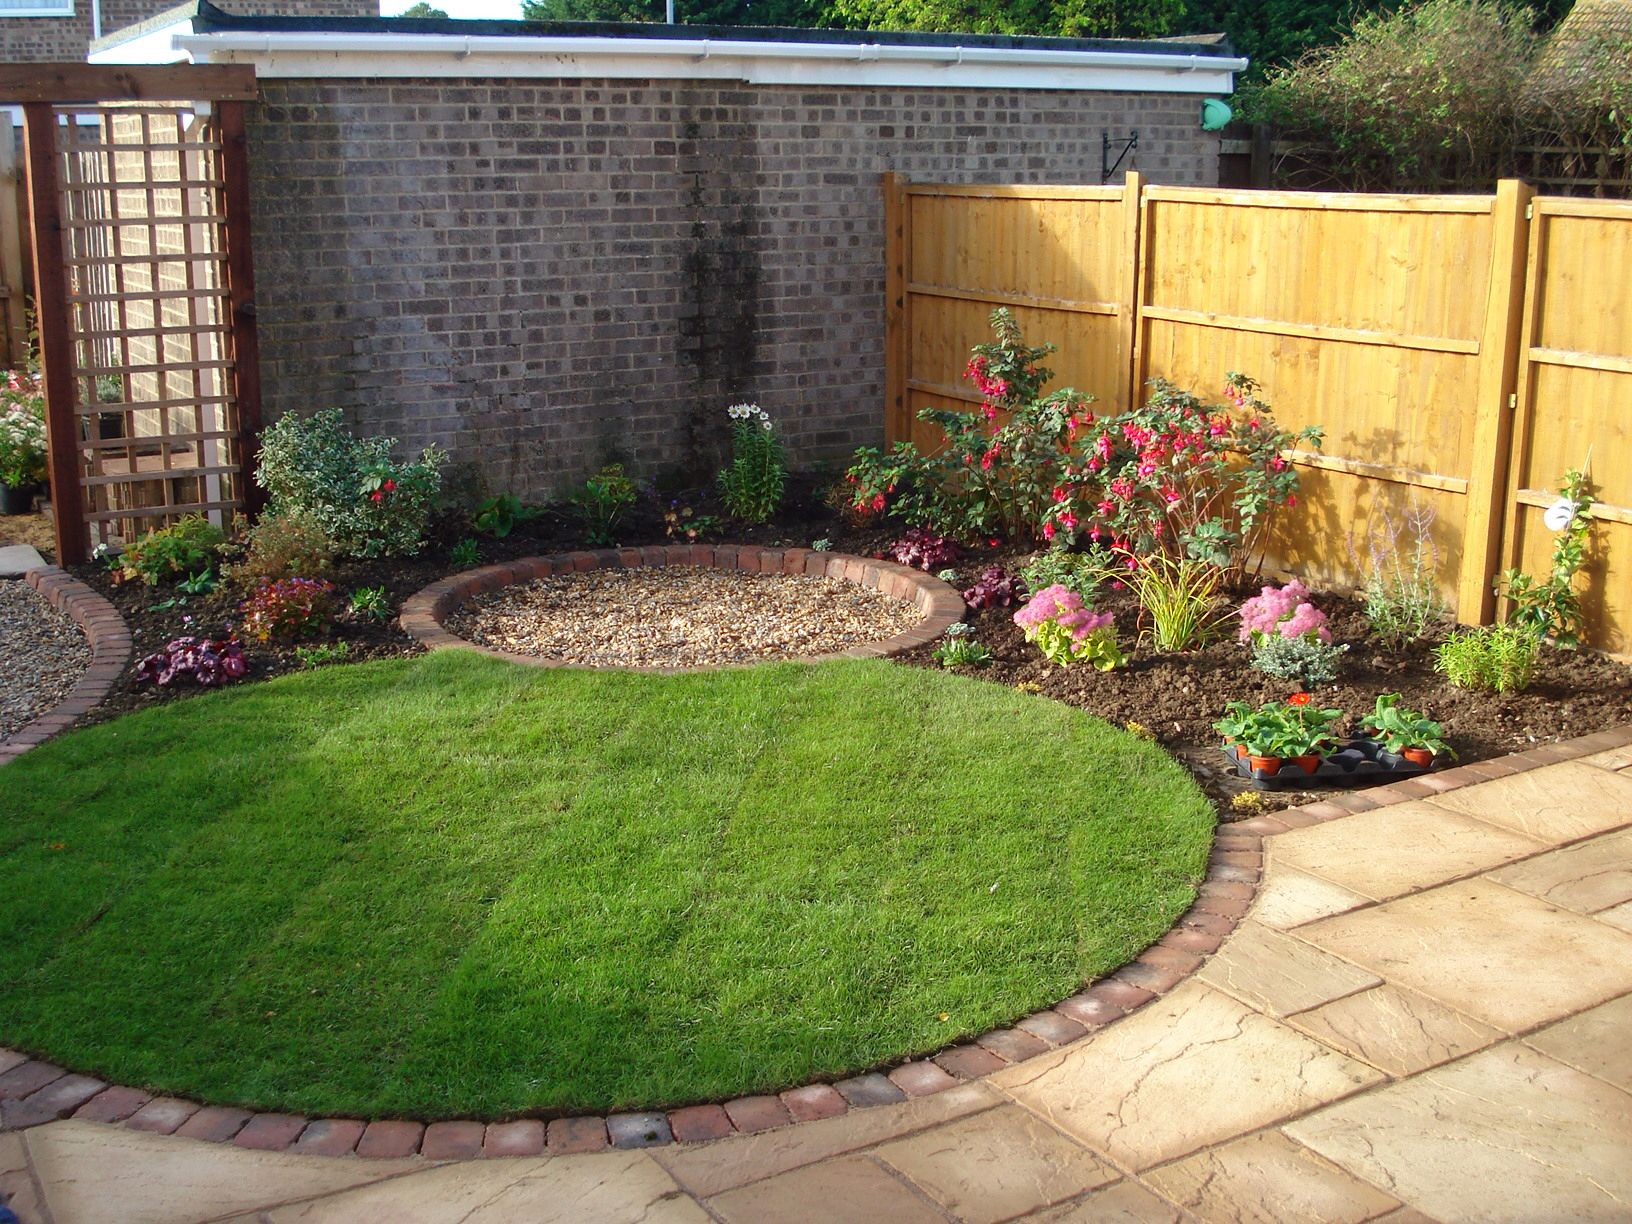 small circular lawn with tiny round patio beyond for a coherent effect in an urban garden